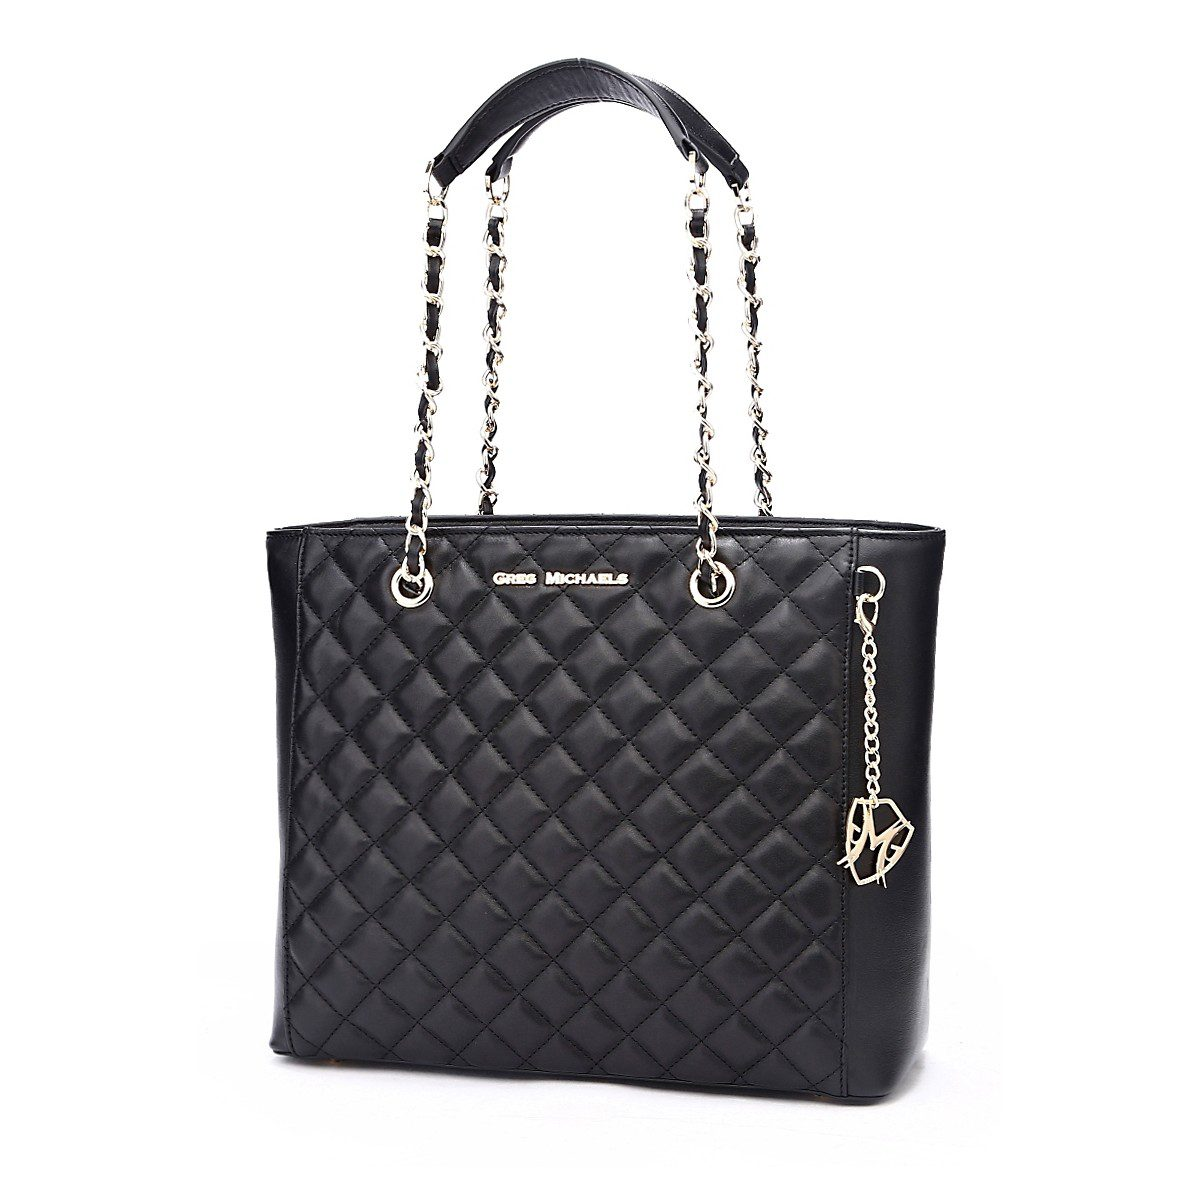 20141125-greg-michaels-nappa-leather-quilted-hannah-functional-chain-tote